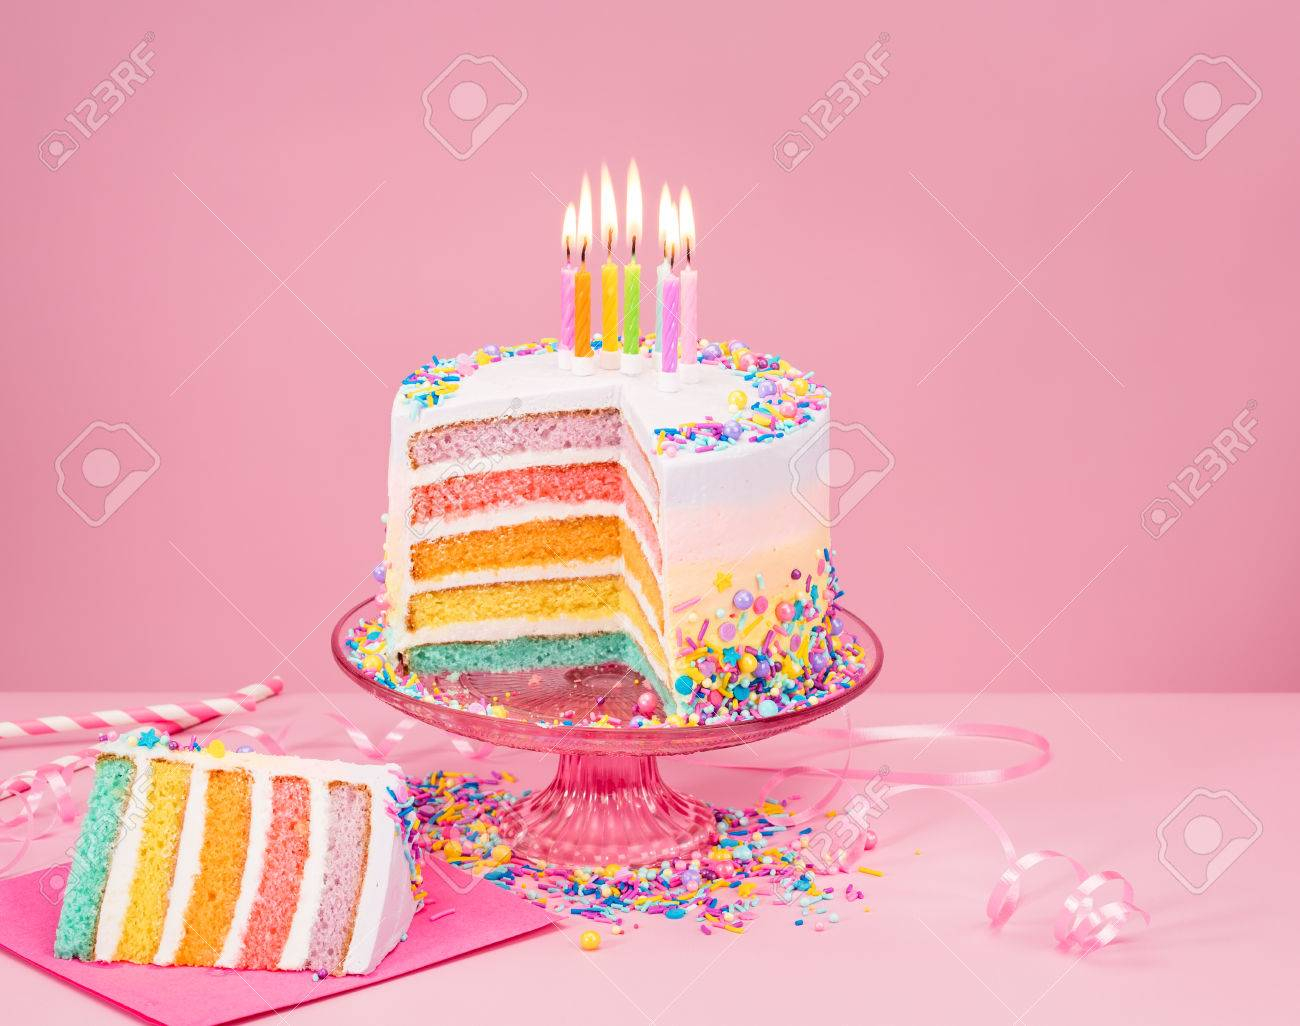 Rainbow Birthday Cake Colorful Rainbow Birthday Cake And With Candles Over A Pink